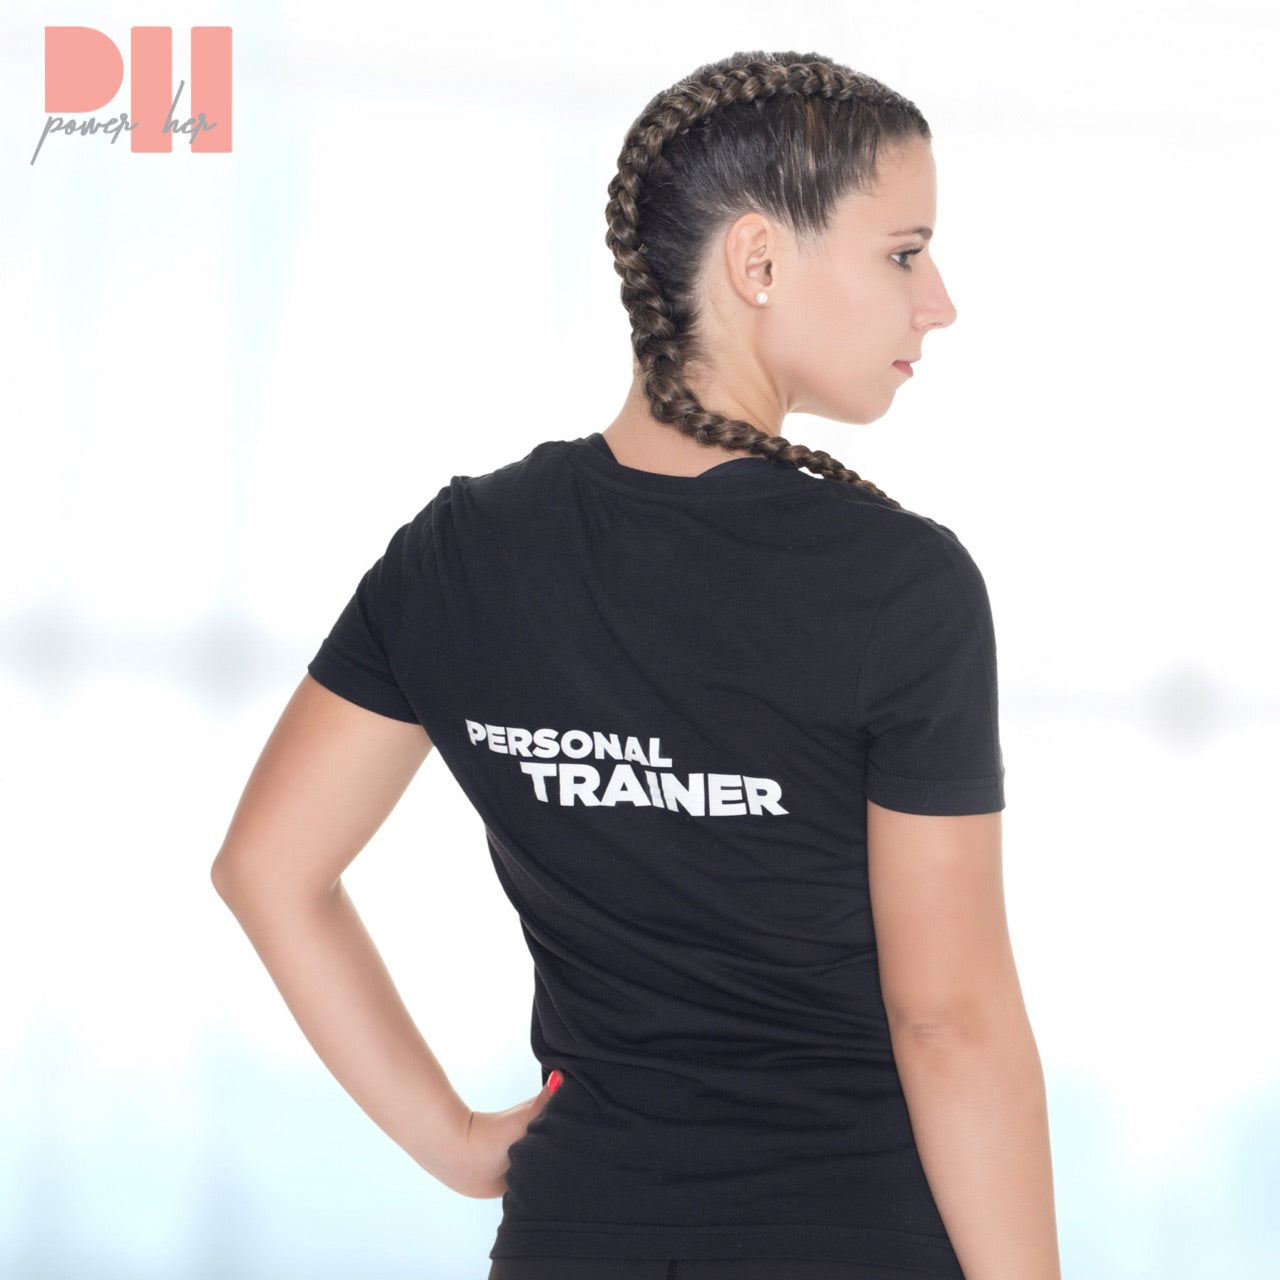 Why use a Personal Trainer